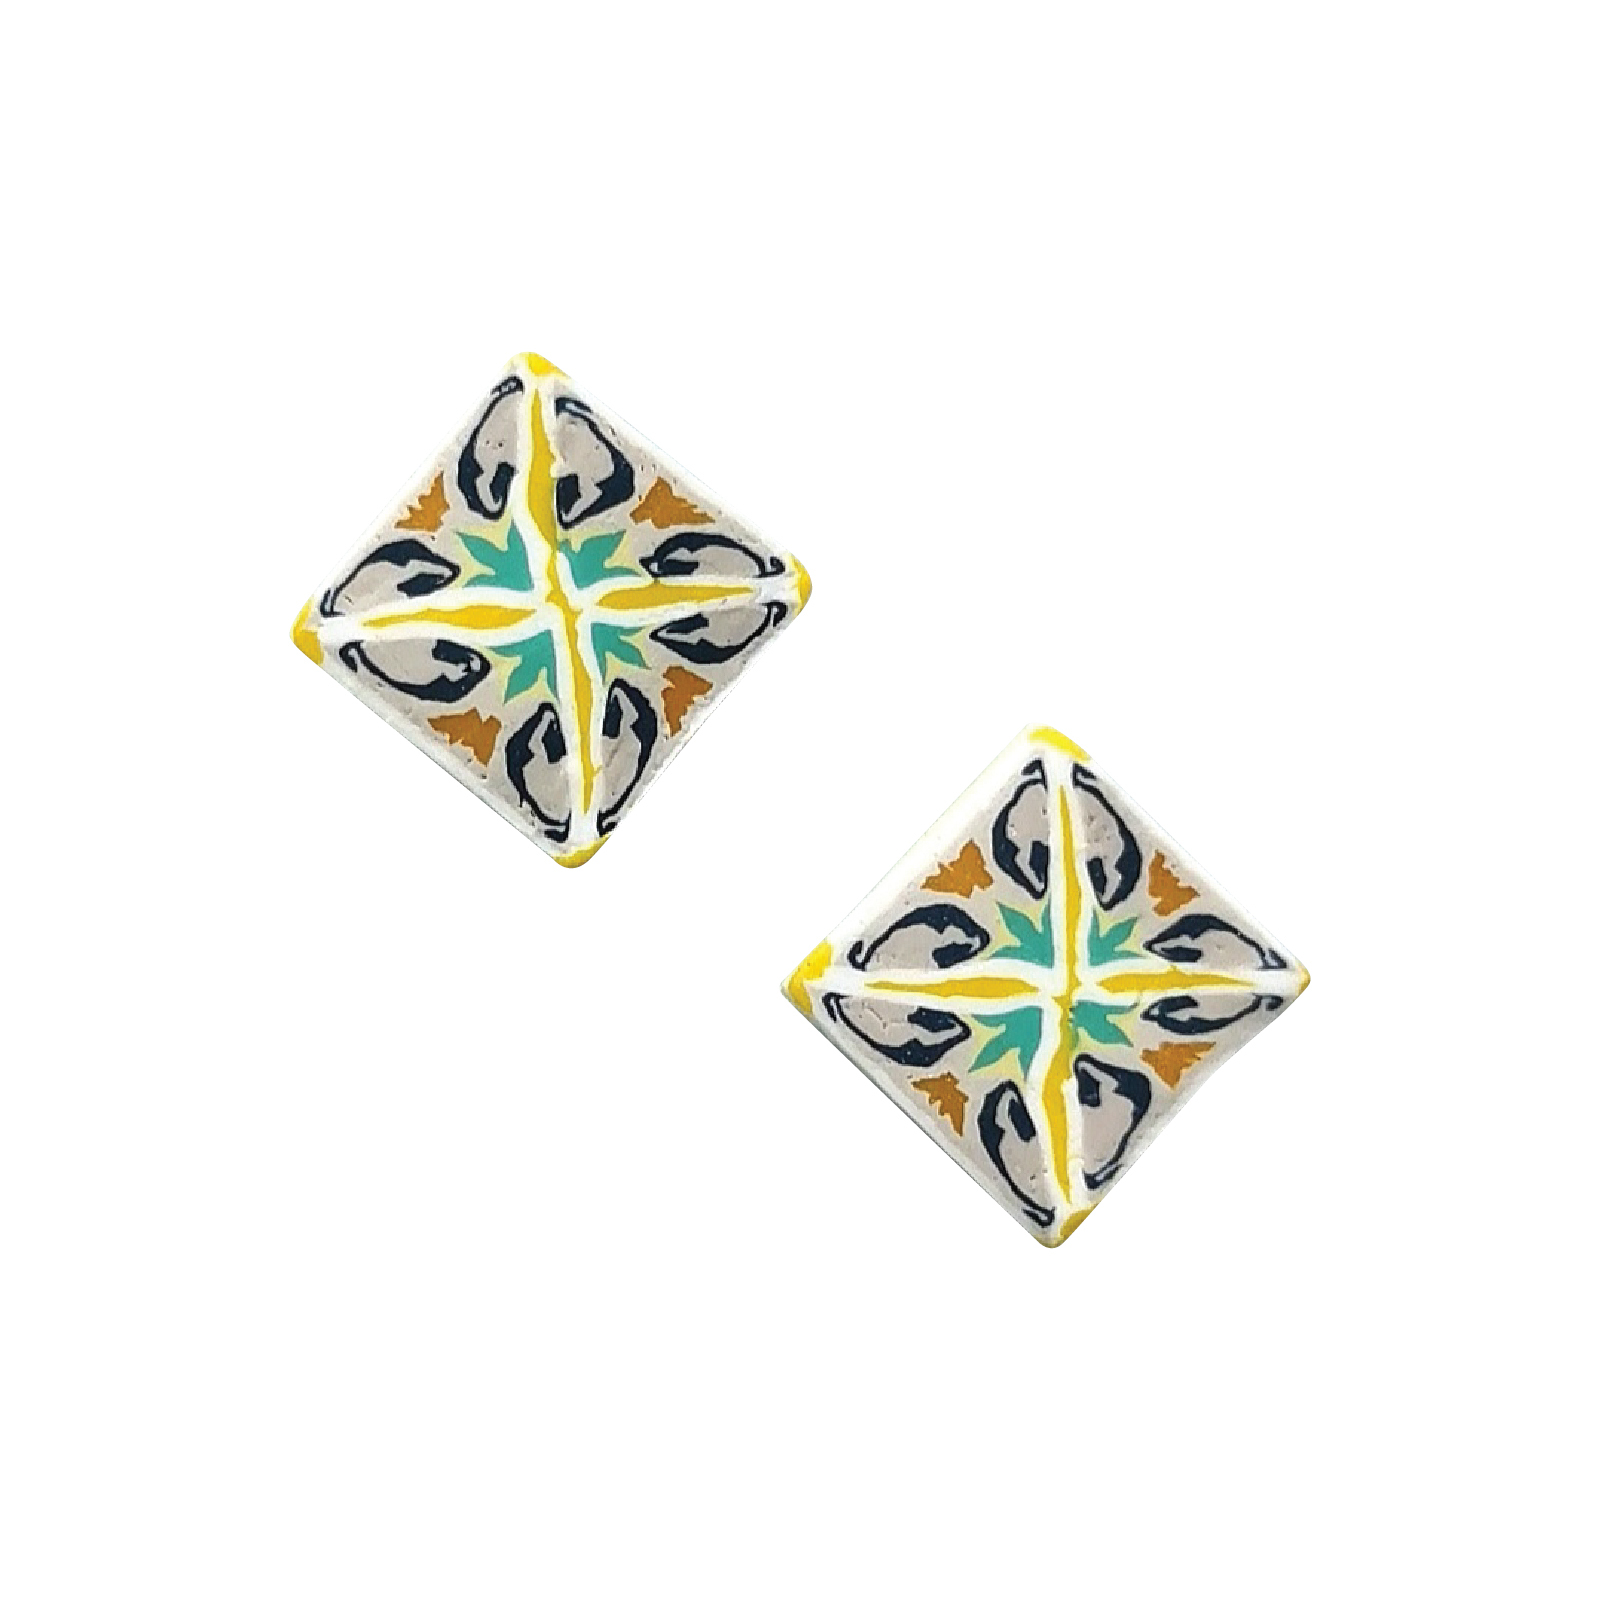 Item 10 - Either _ Or Design Heritage Yellow Tile Studs.jpg